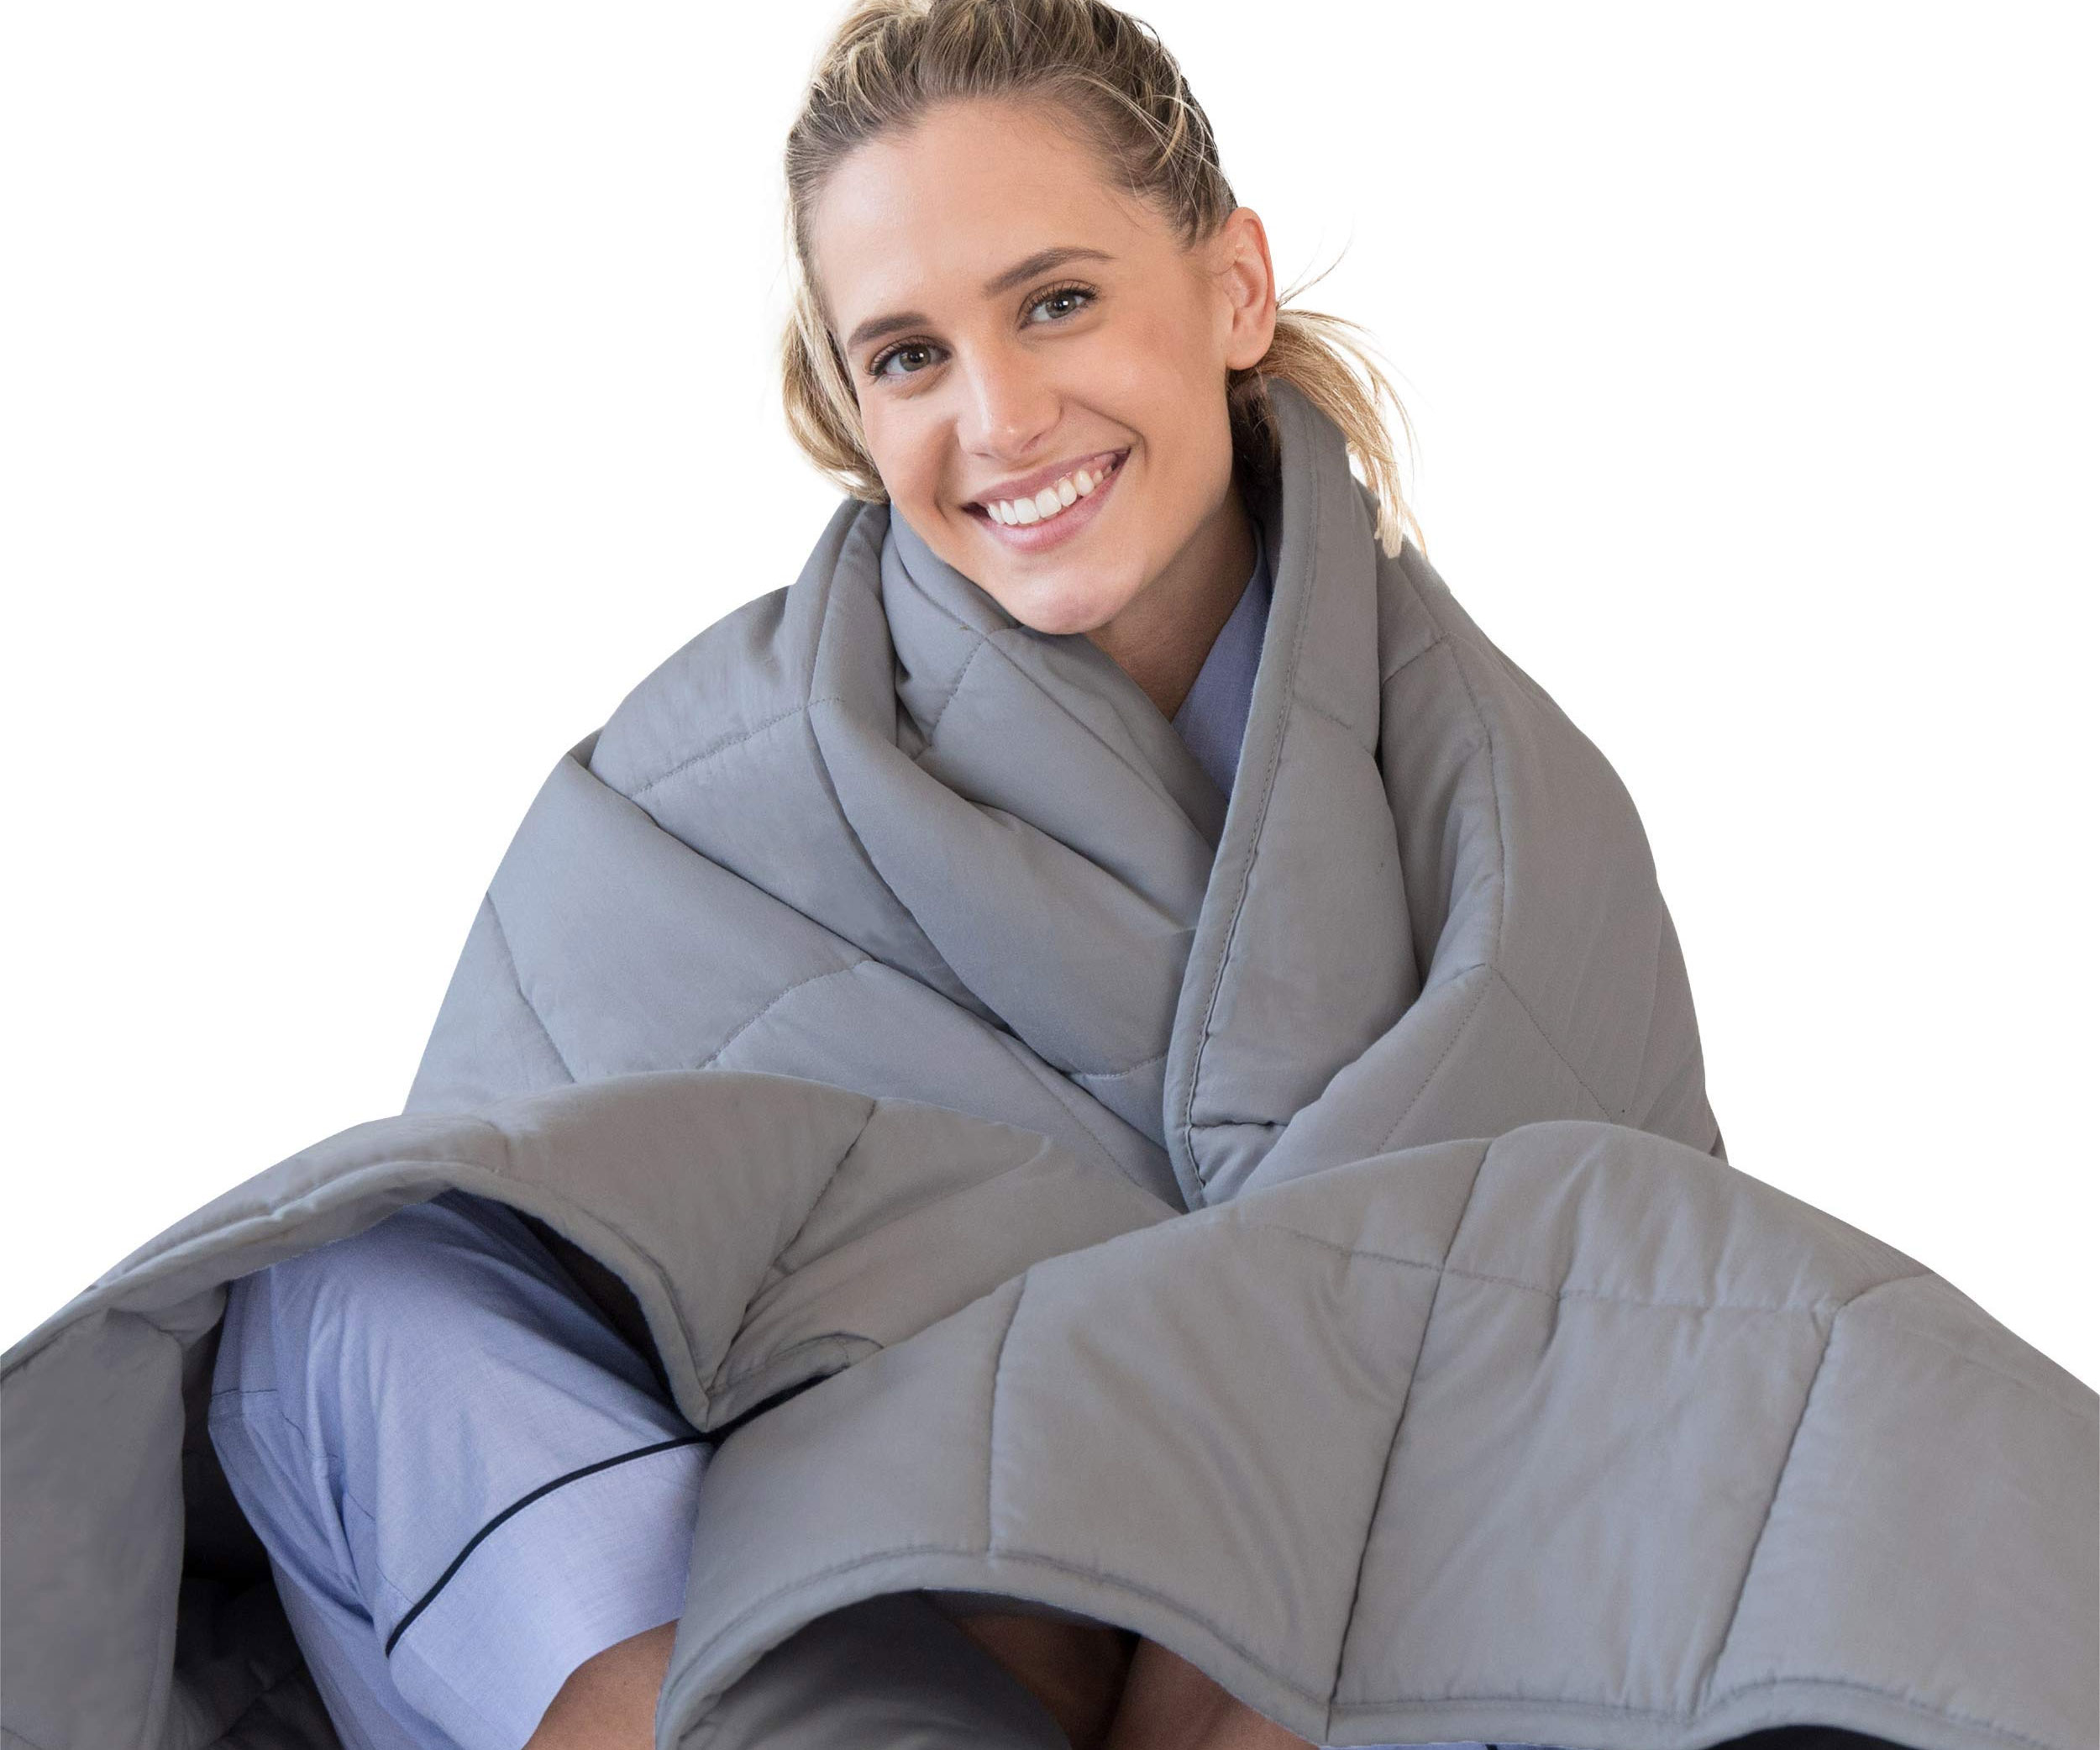 The Stress Relieving Weighted Blanket 1